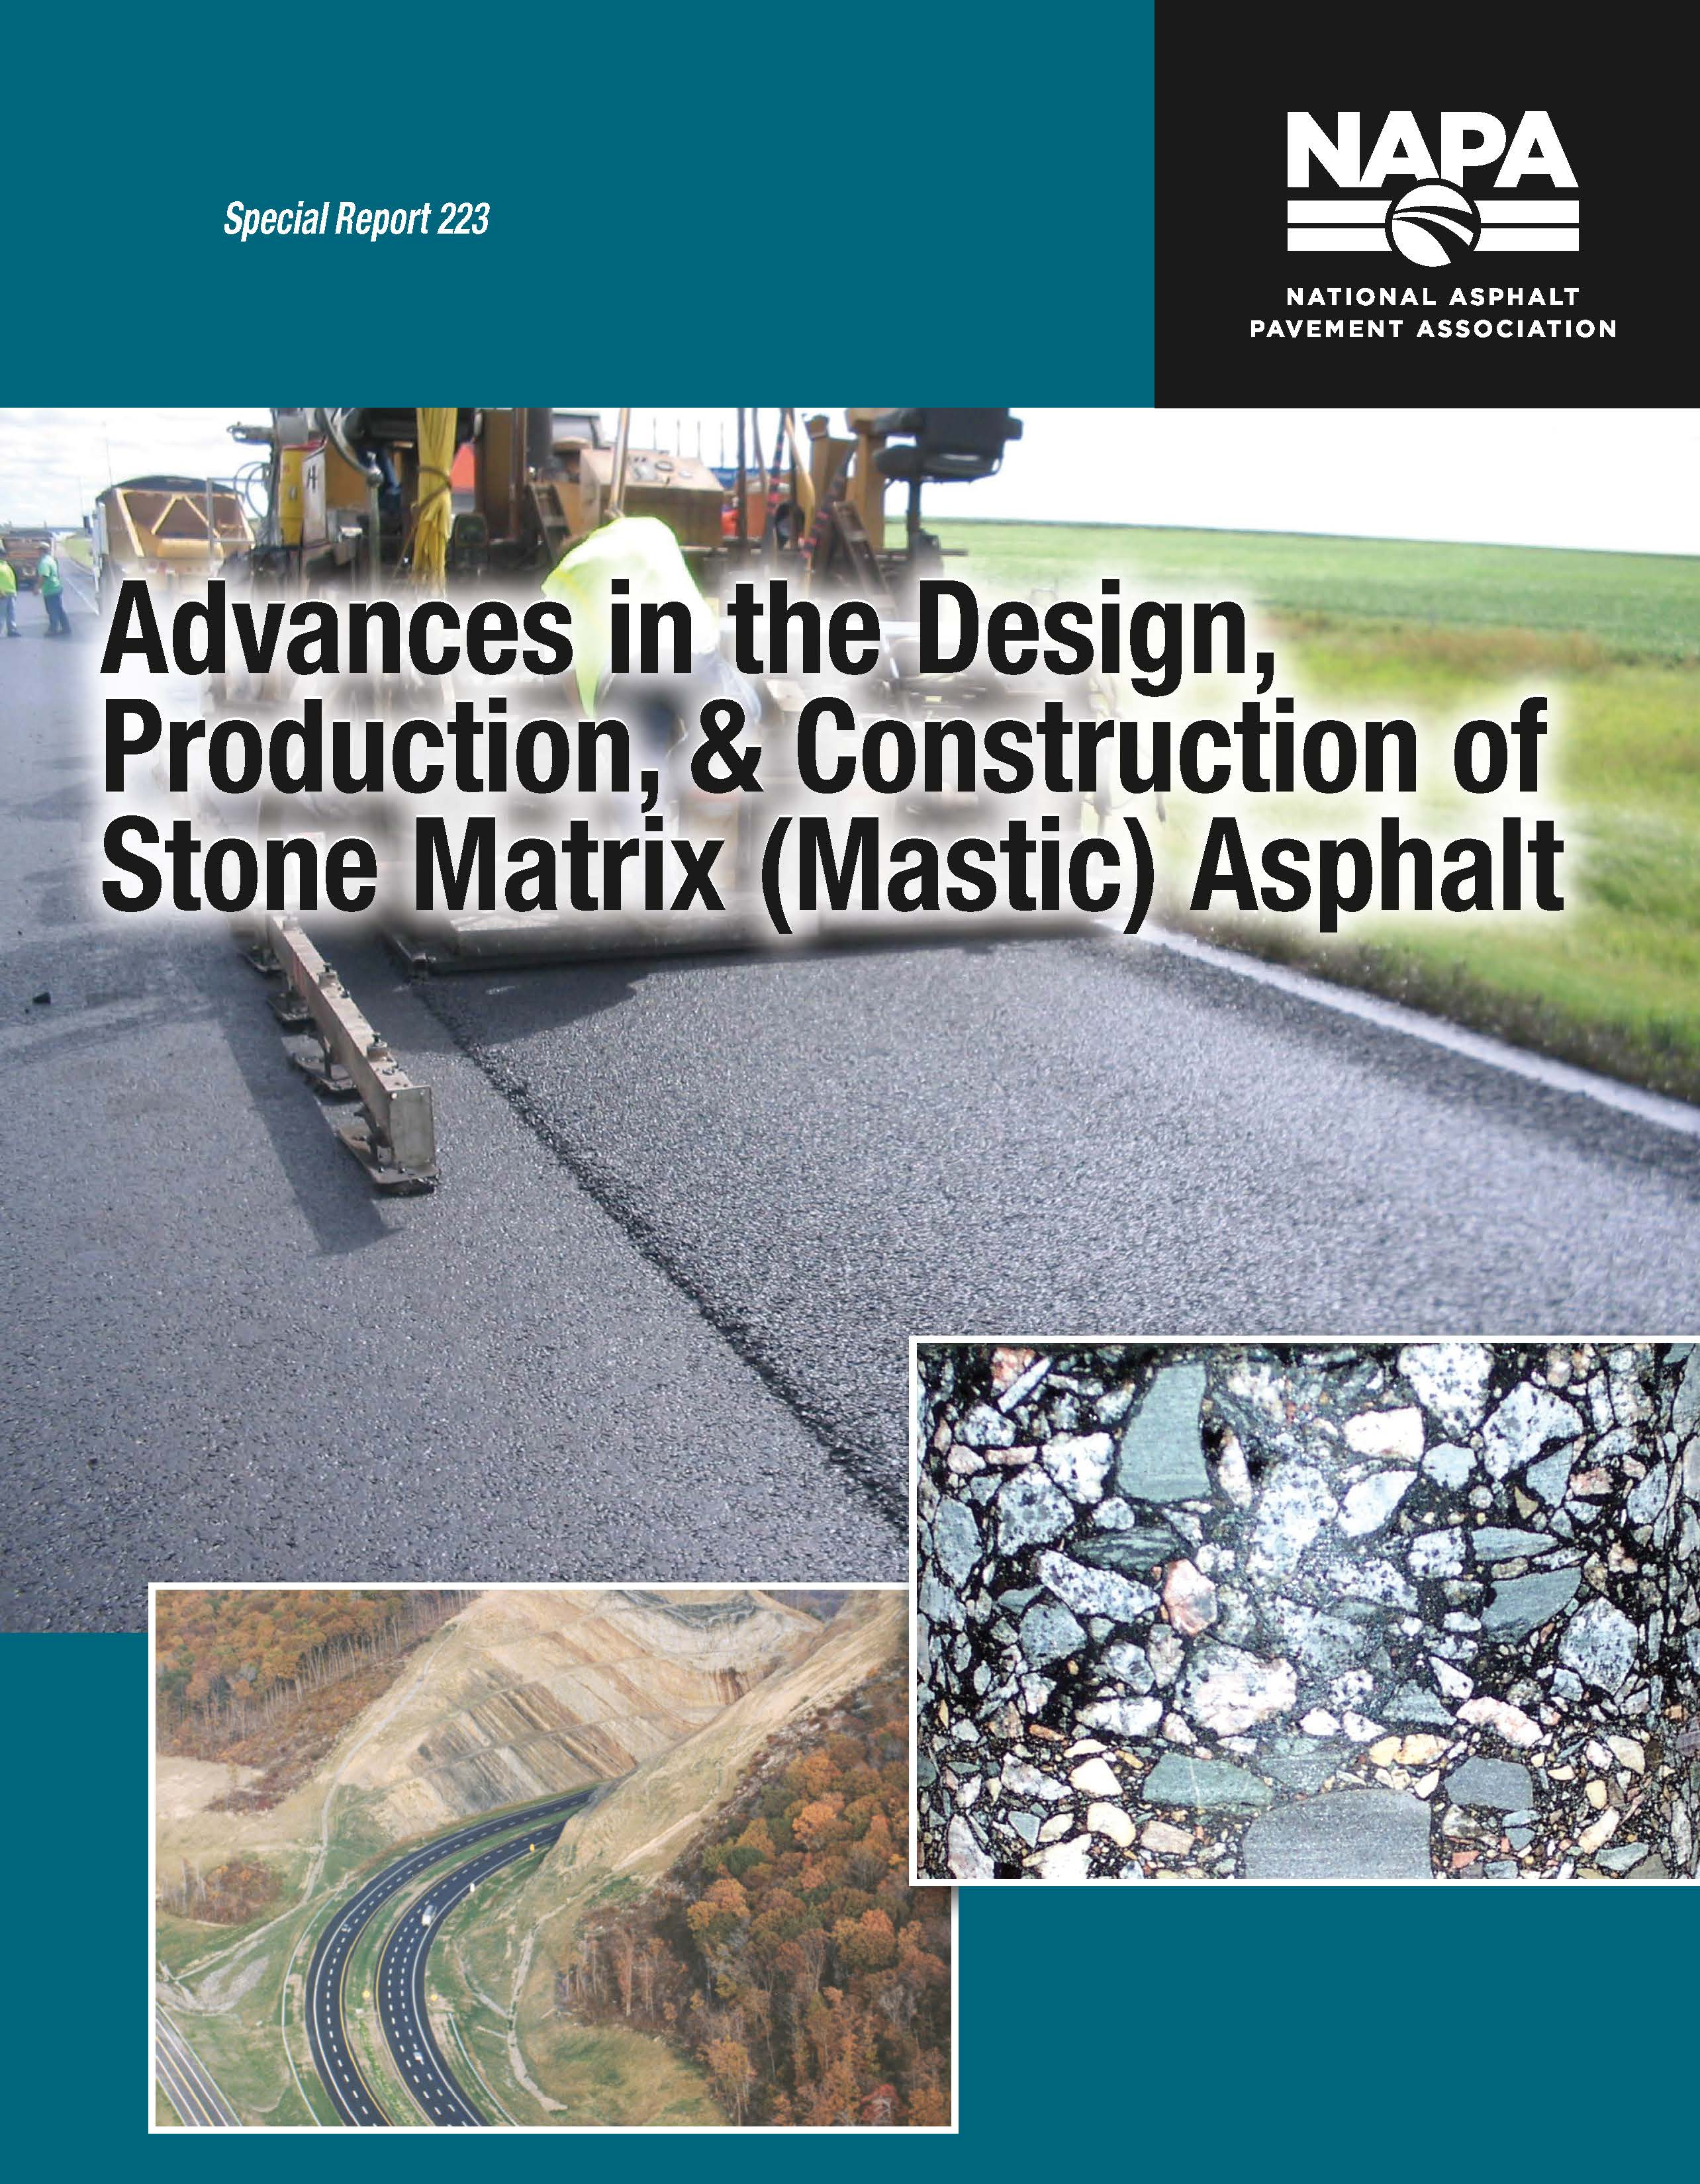 Advances in the Design, Production, & Construction of Stone Matrix (Mastic) Asphalt [PDF]